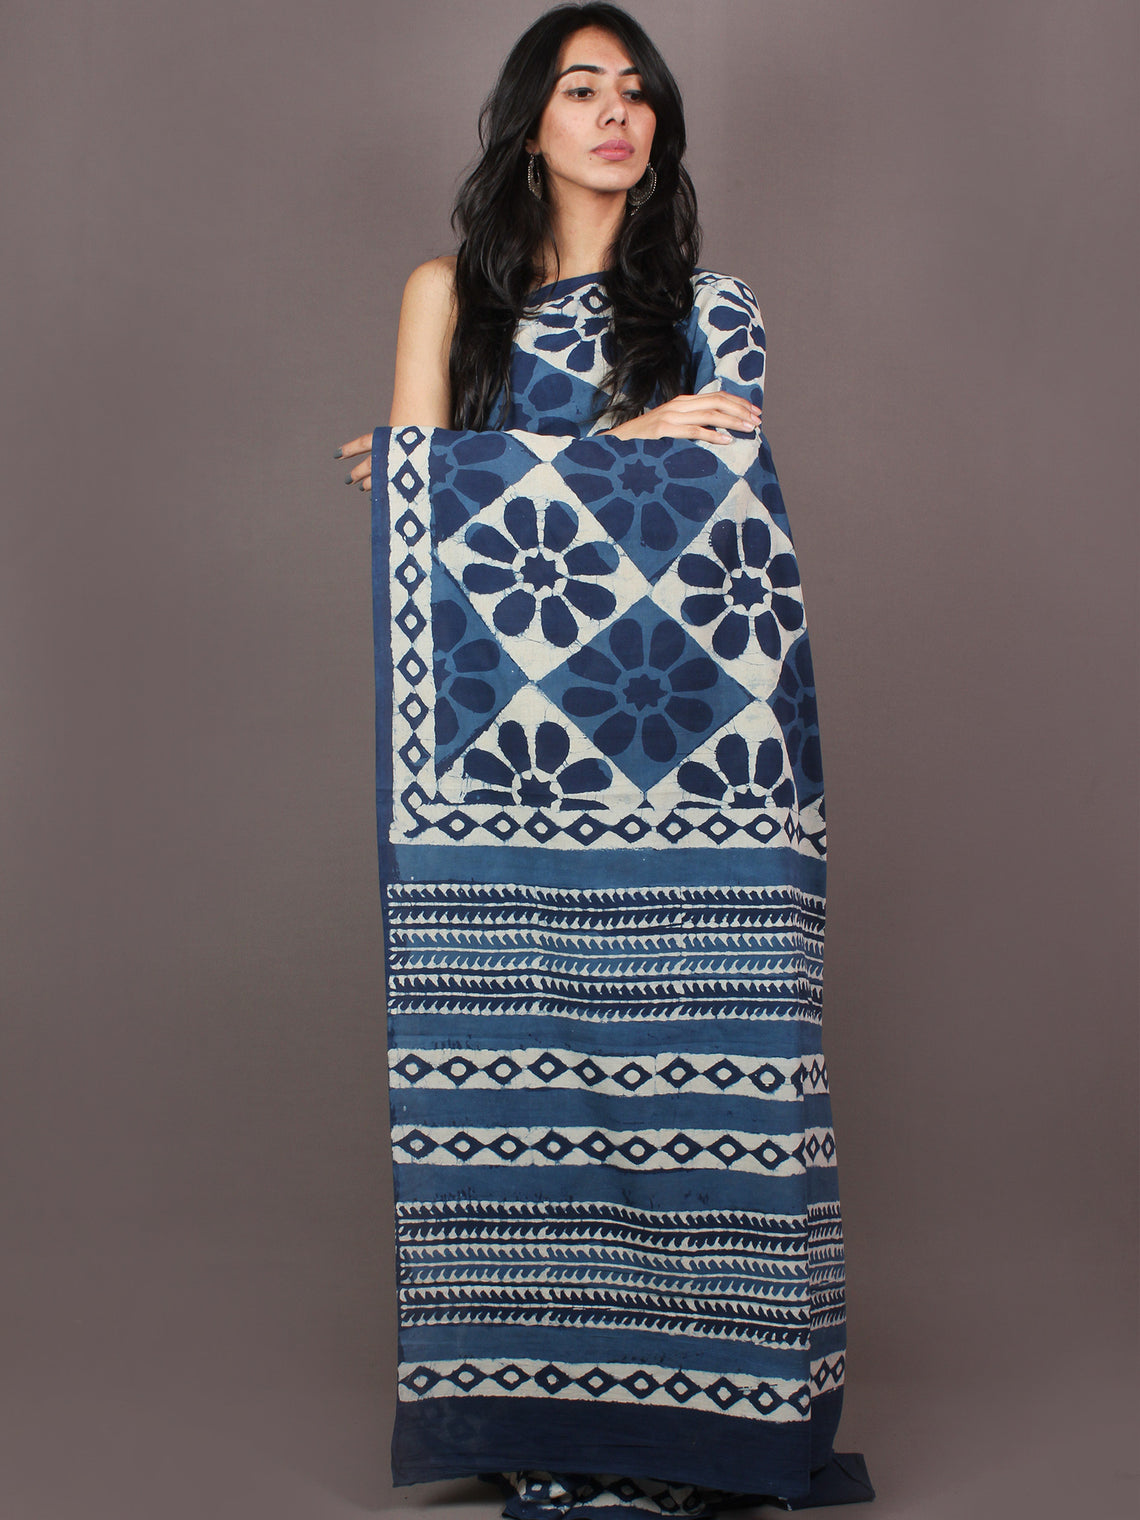 Indigo White Bagru Dabu Hand Block Printed in Cotton Mul Saree - S03170882